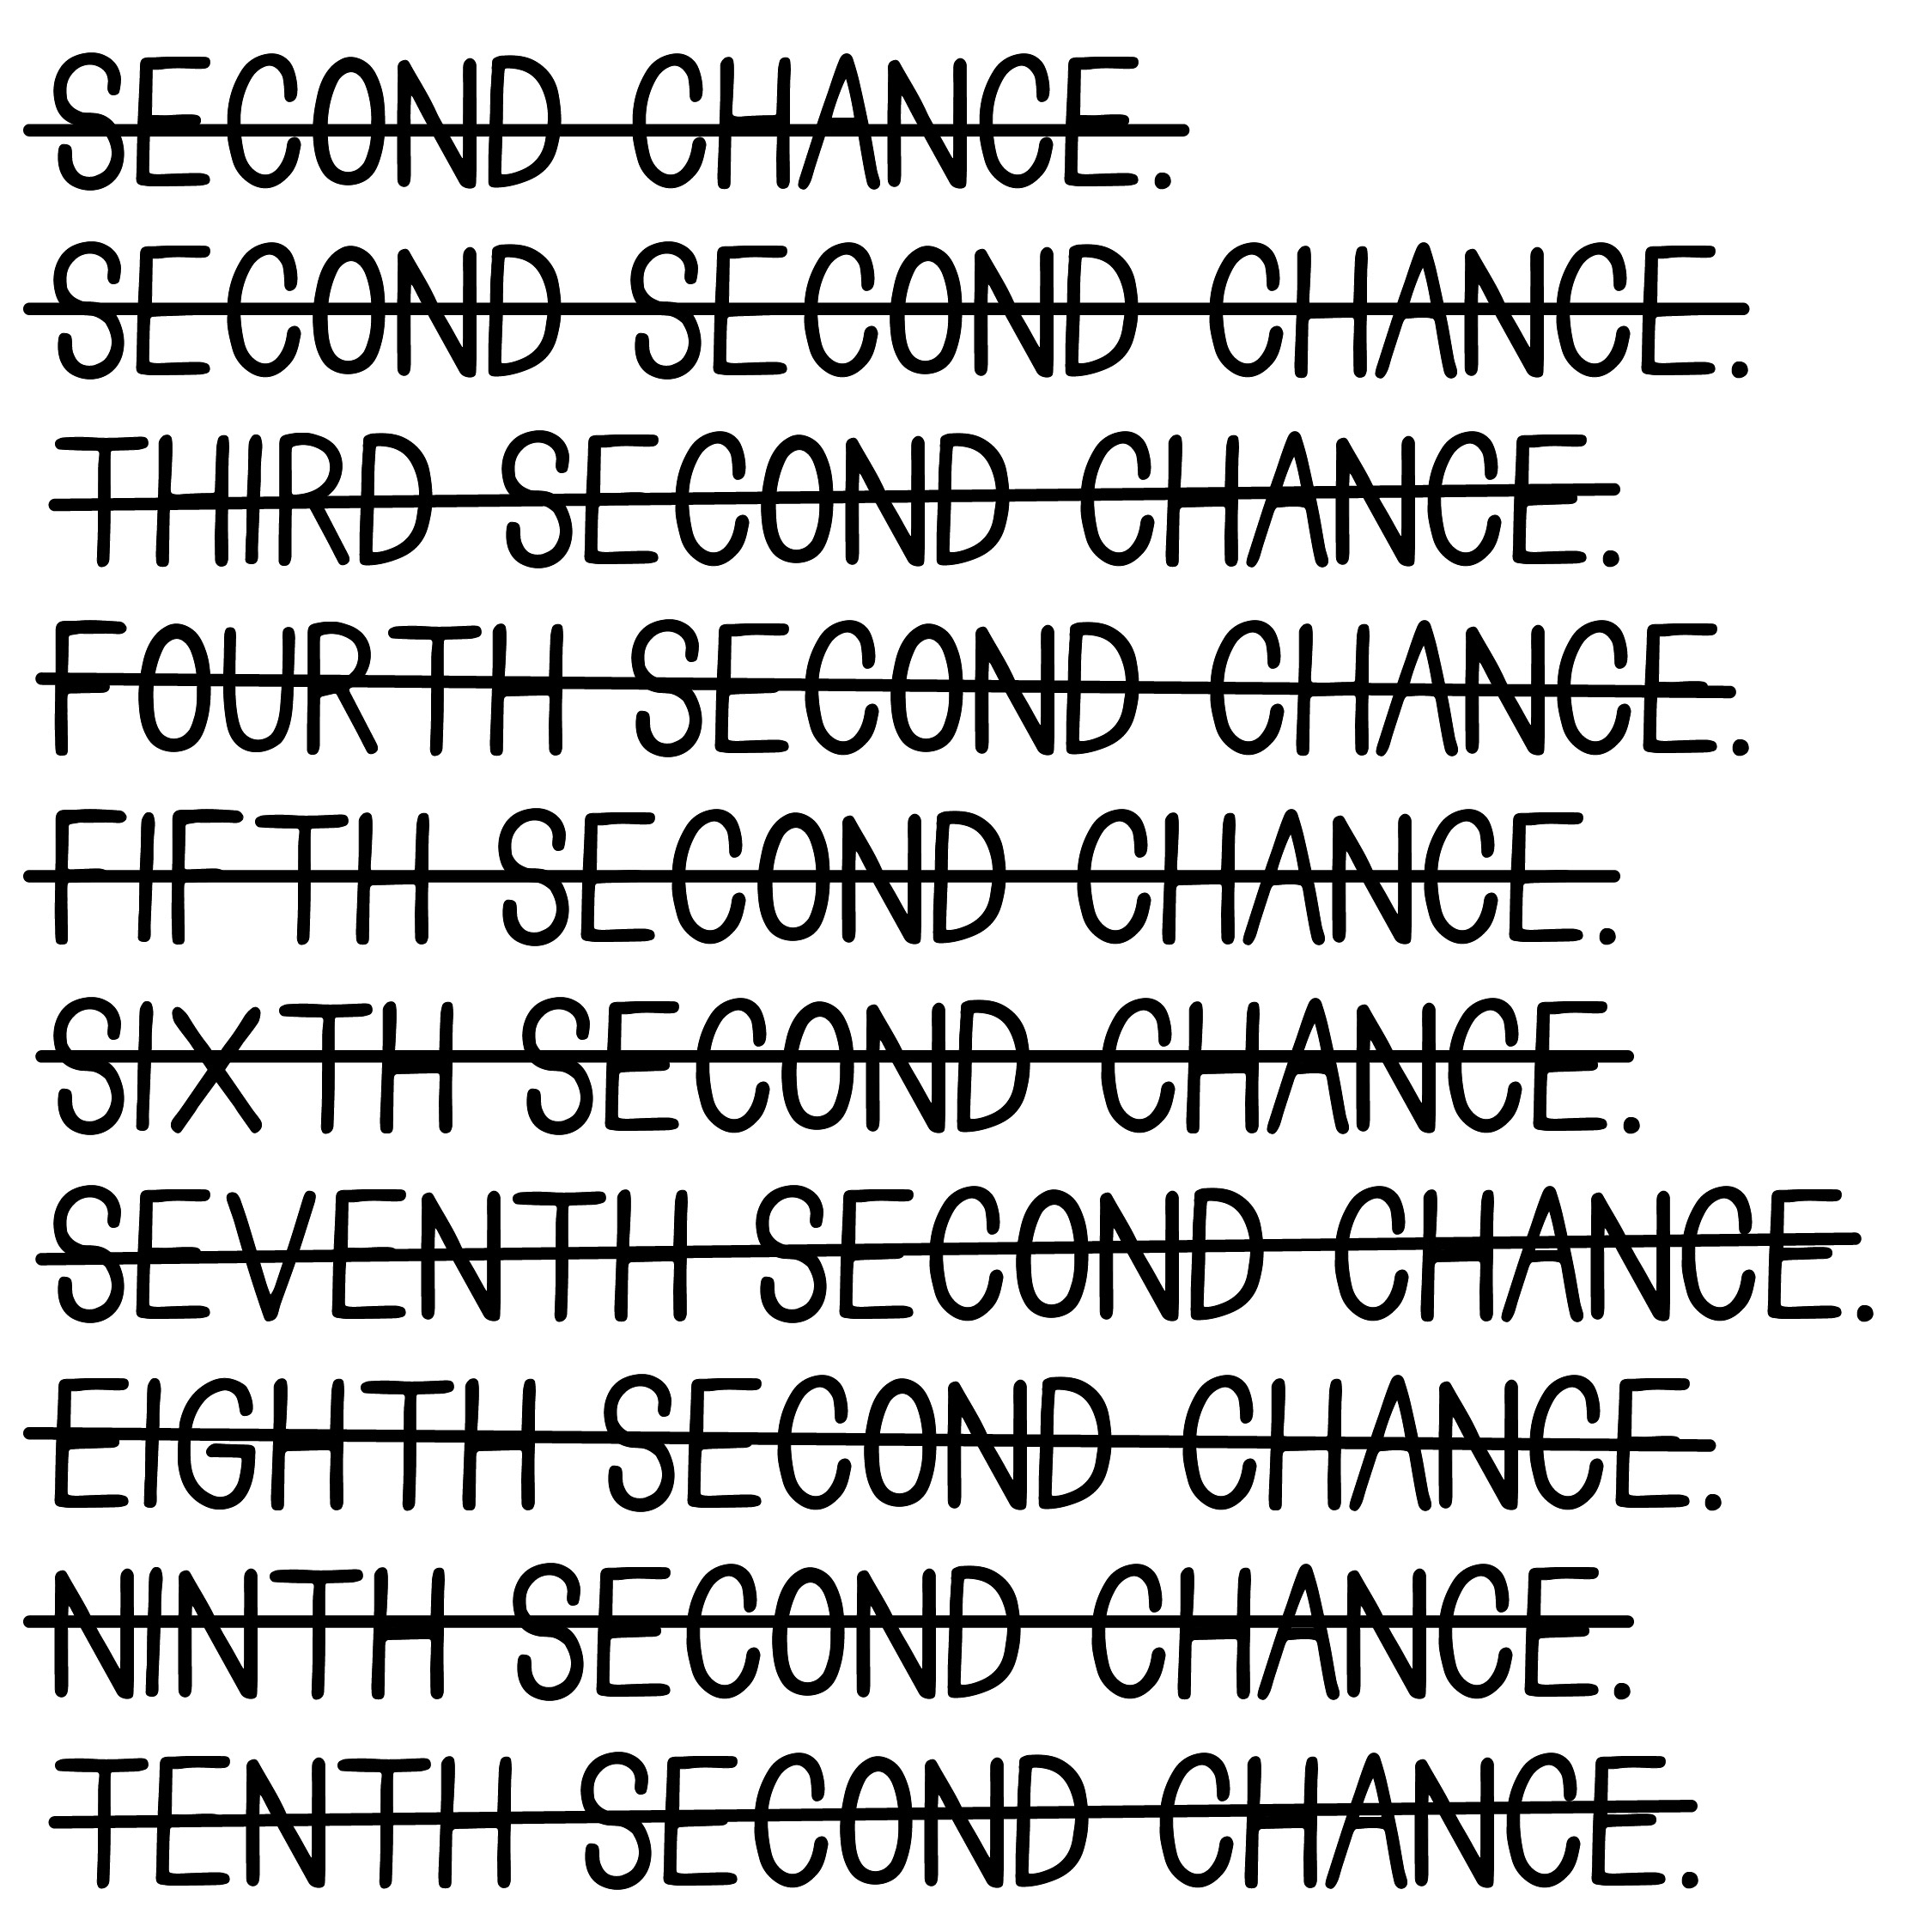 secondchance-01.jpg